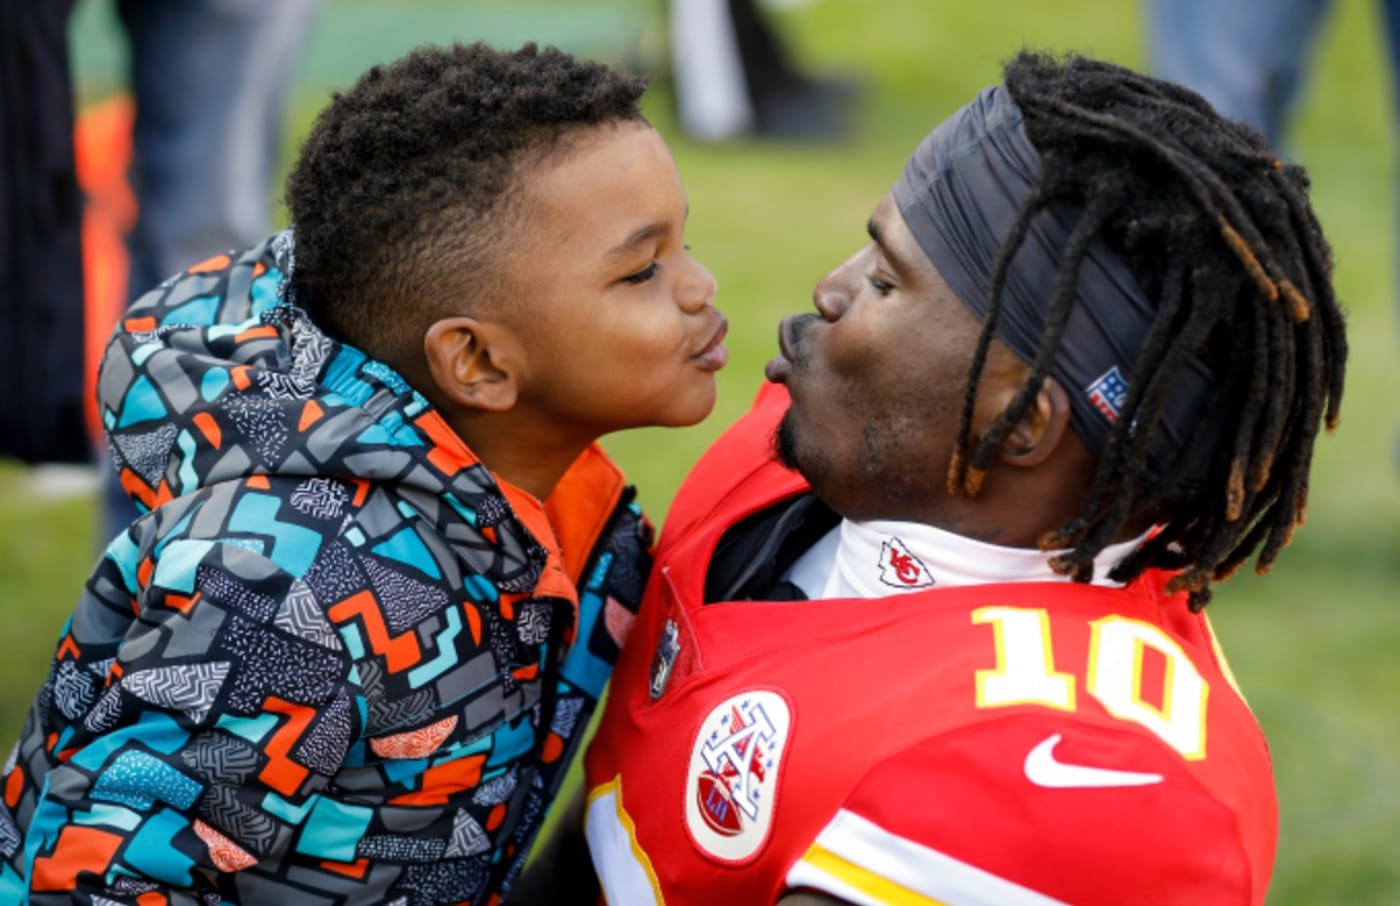 Tyreek Hill #10 of the Kansas City Chiefs teases his son